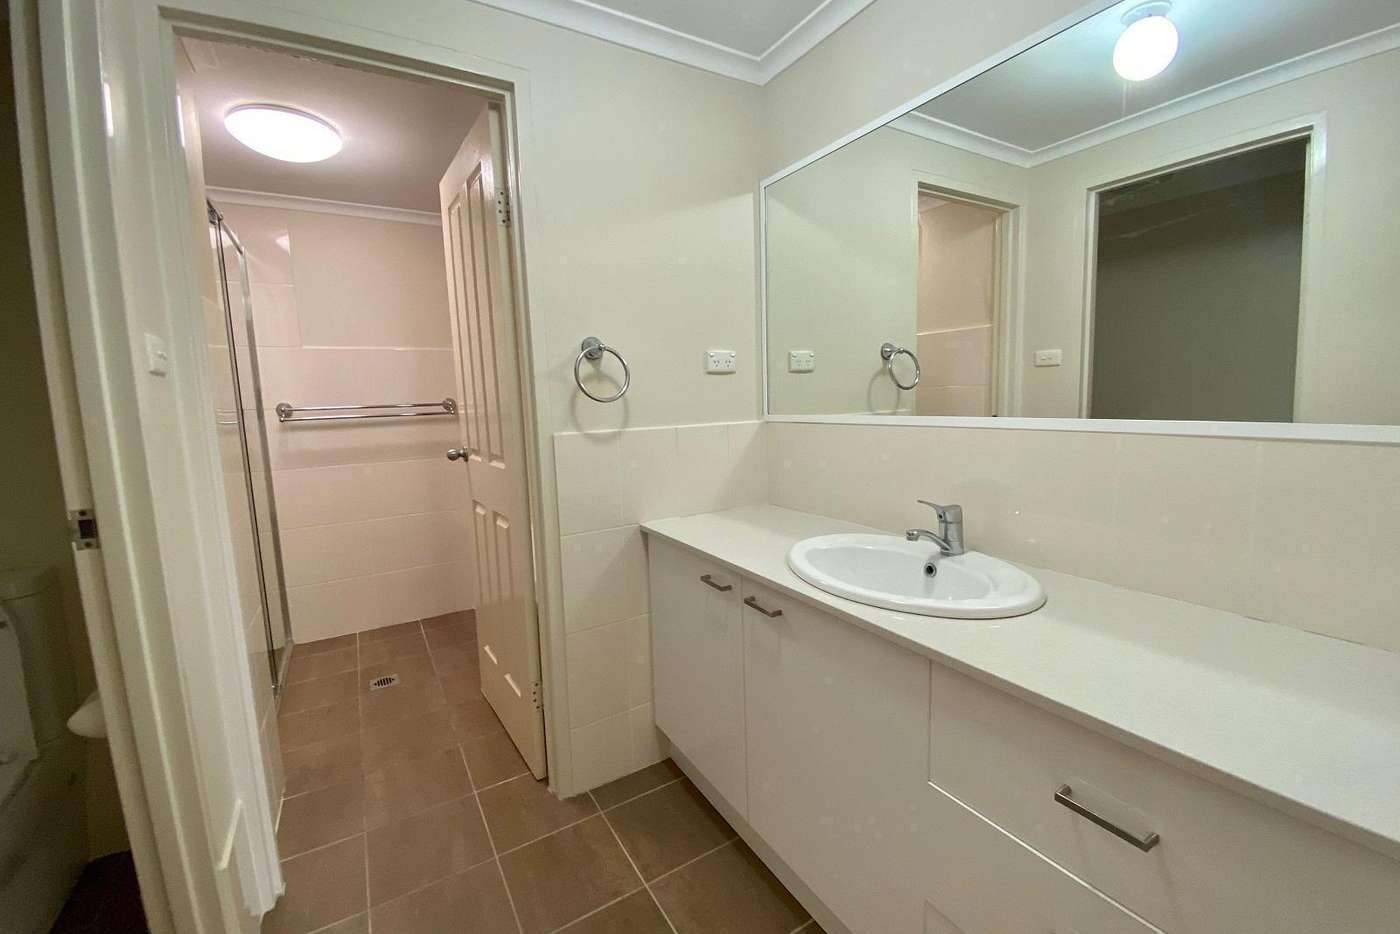 Seventh view of Homely apartment listing, 9/2 Edward Street, Wollongong NSW 2500